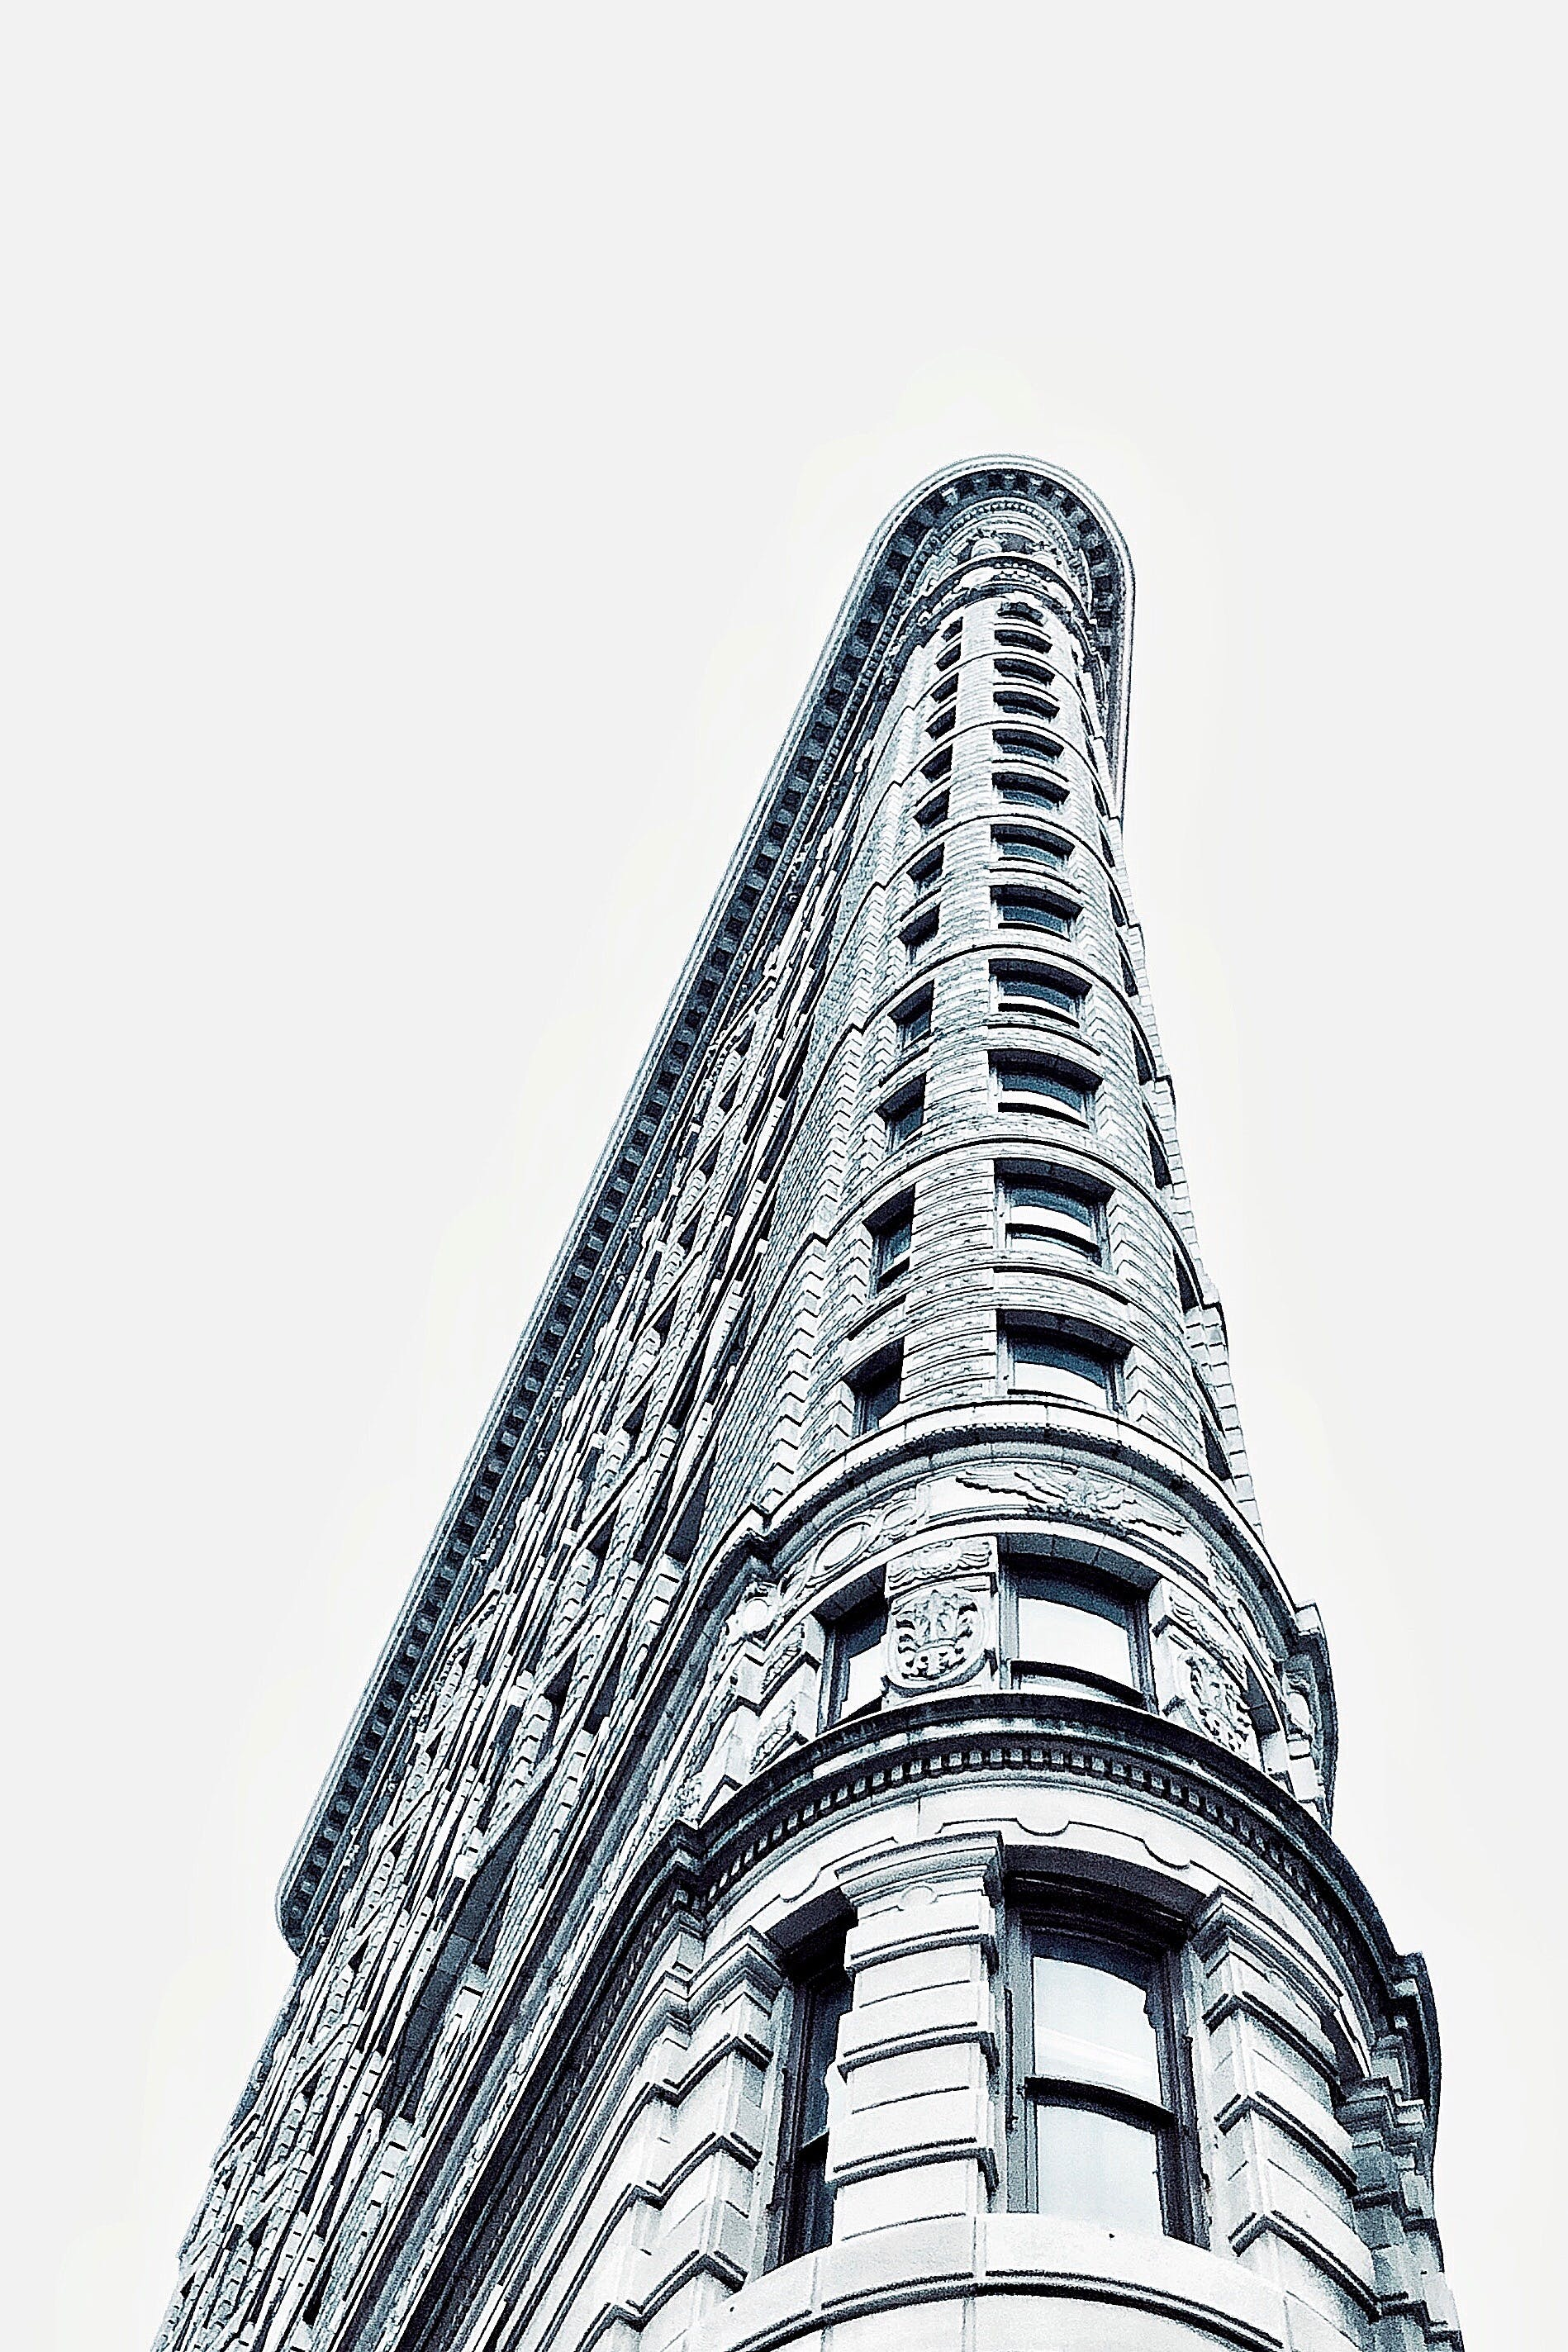 Gratis stockfoto met amerika, architectuur, attractie, downtown